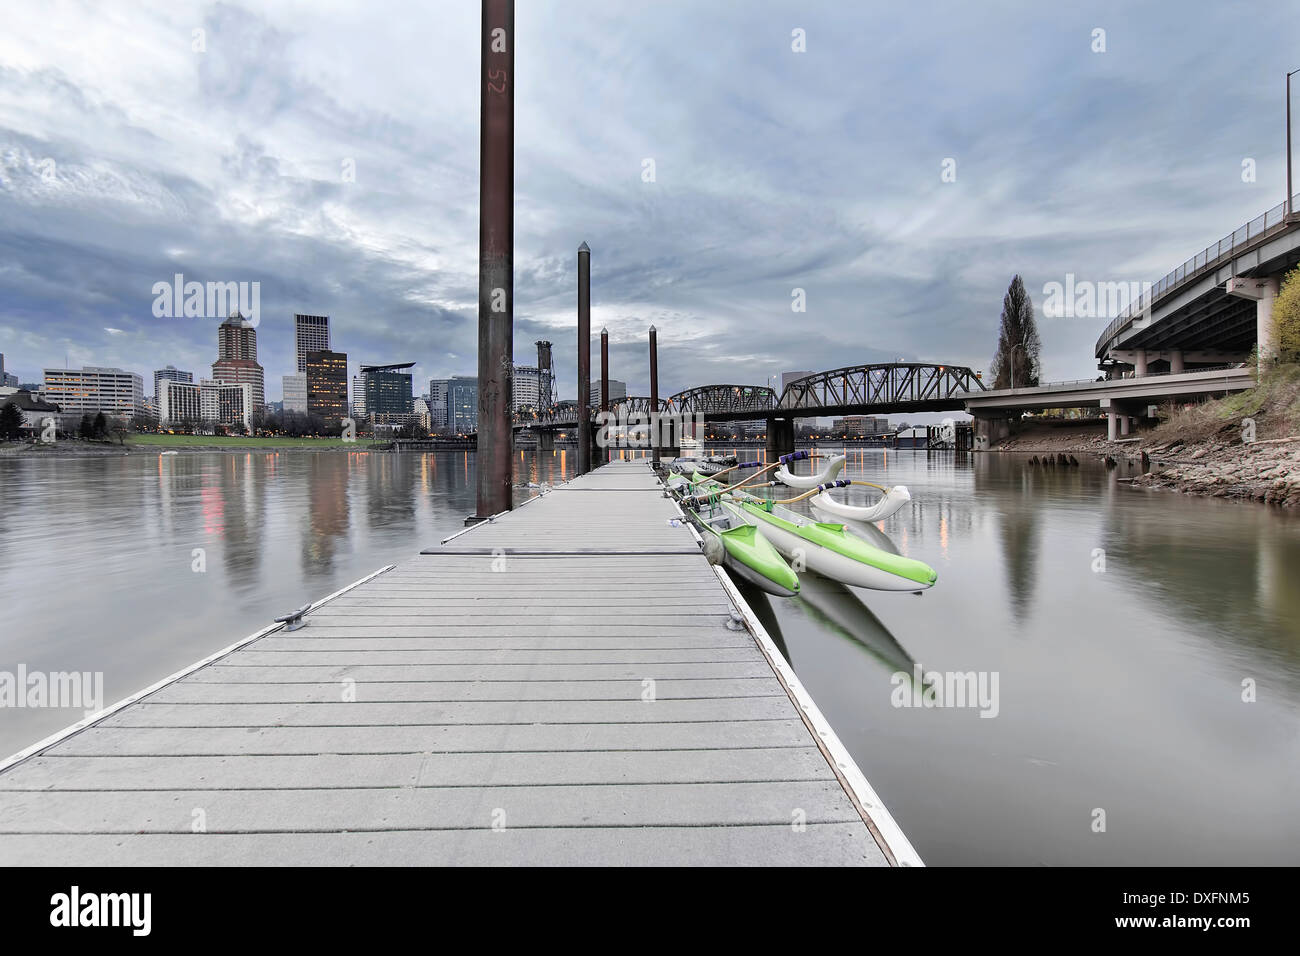 Moorage at Portland Downtown Waterfront on the Willamette River with City Skyline at Dusk - Stock Image